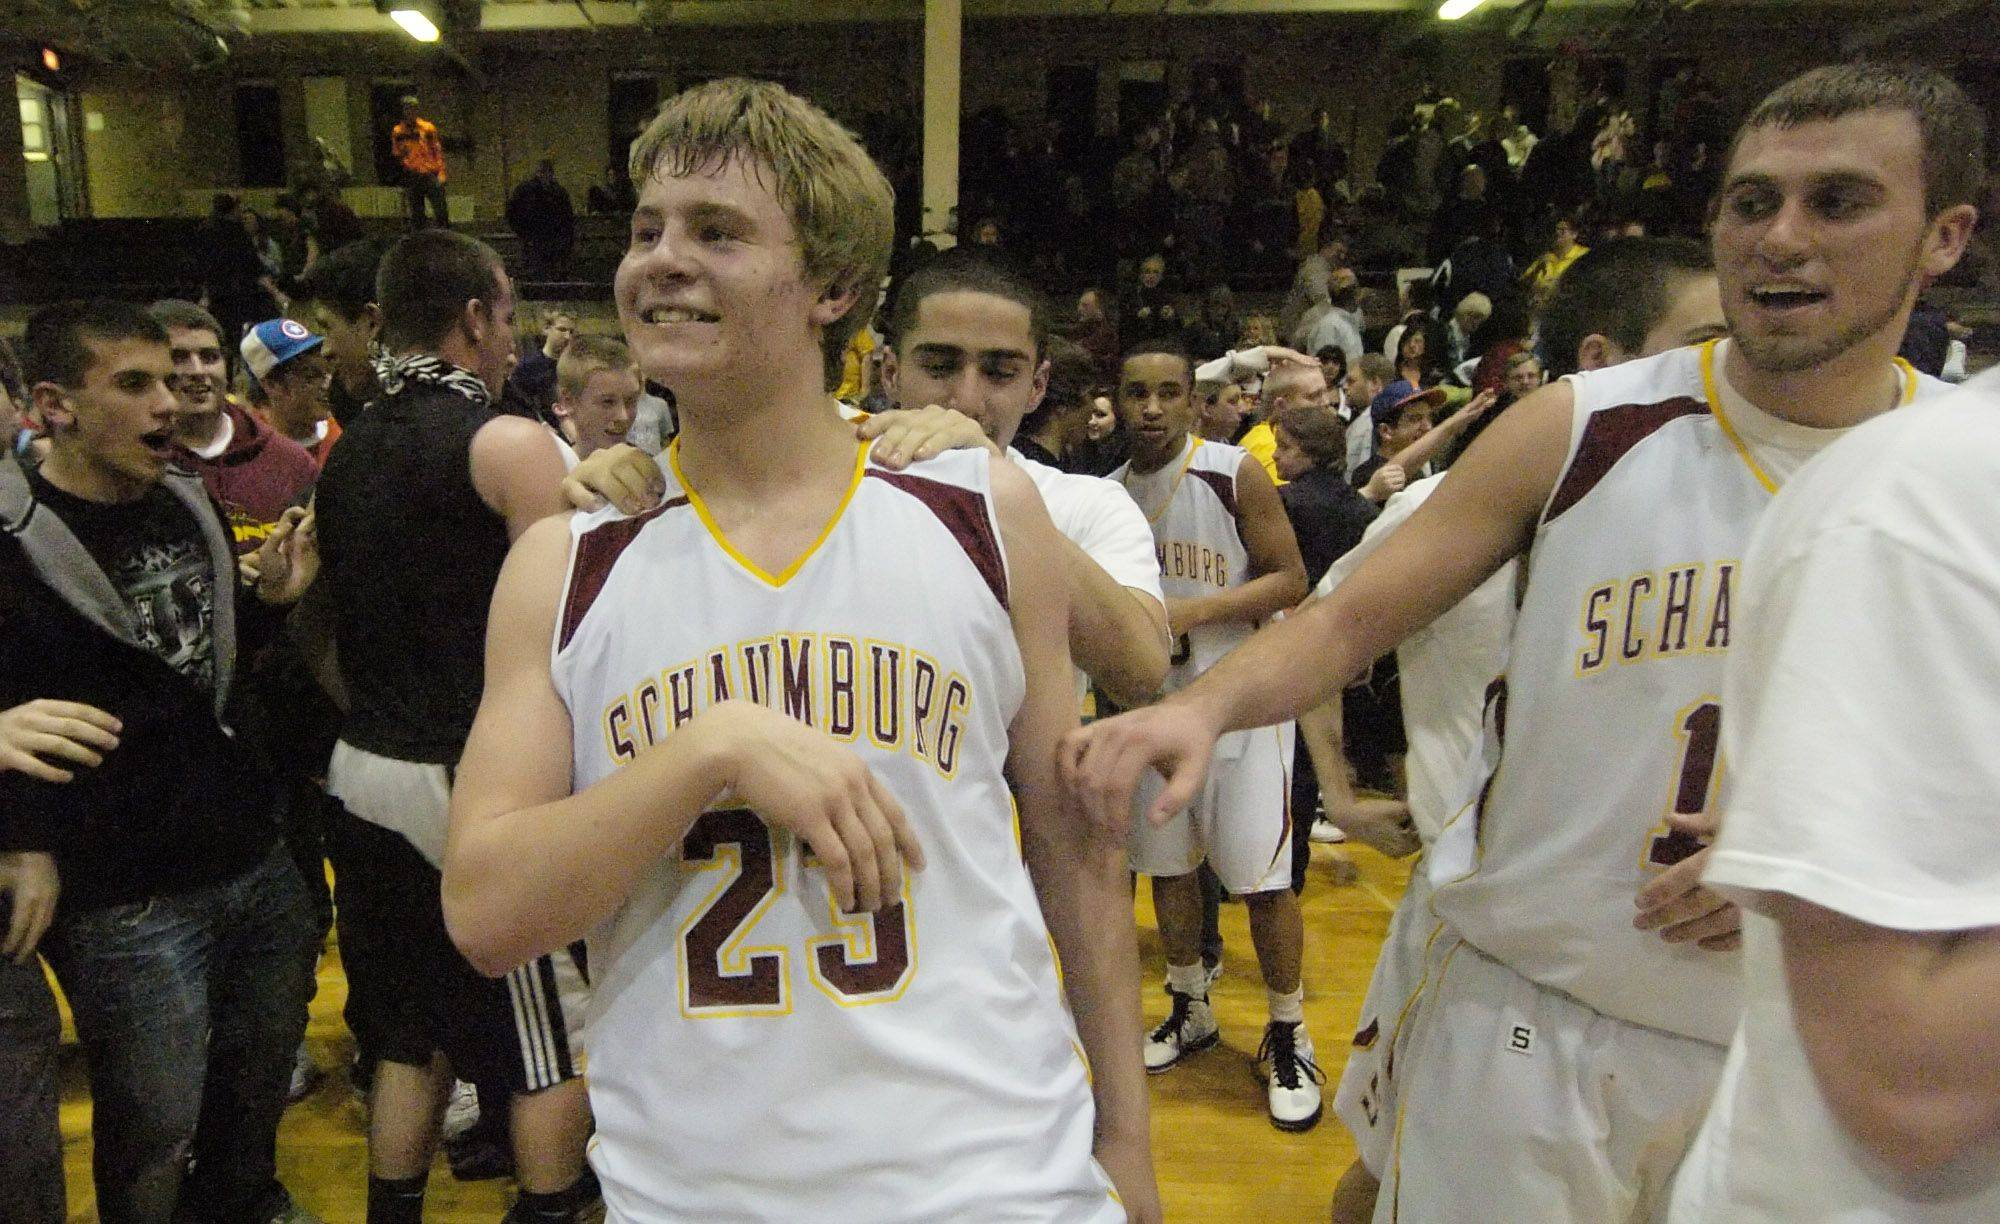 Schaumburg's Kyle Bolger, left, and teammate Christian Spandiary celebrate a victory over Niles West.